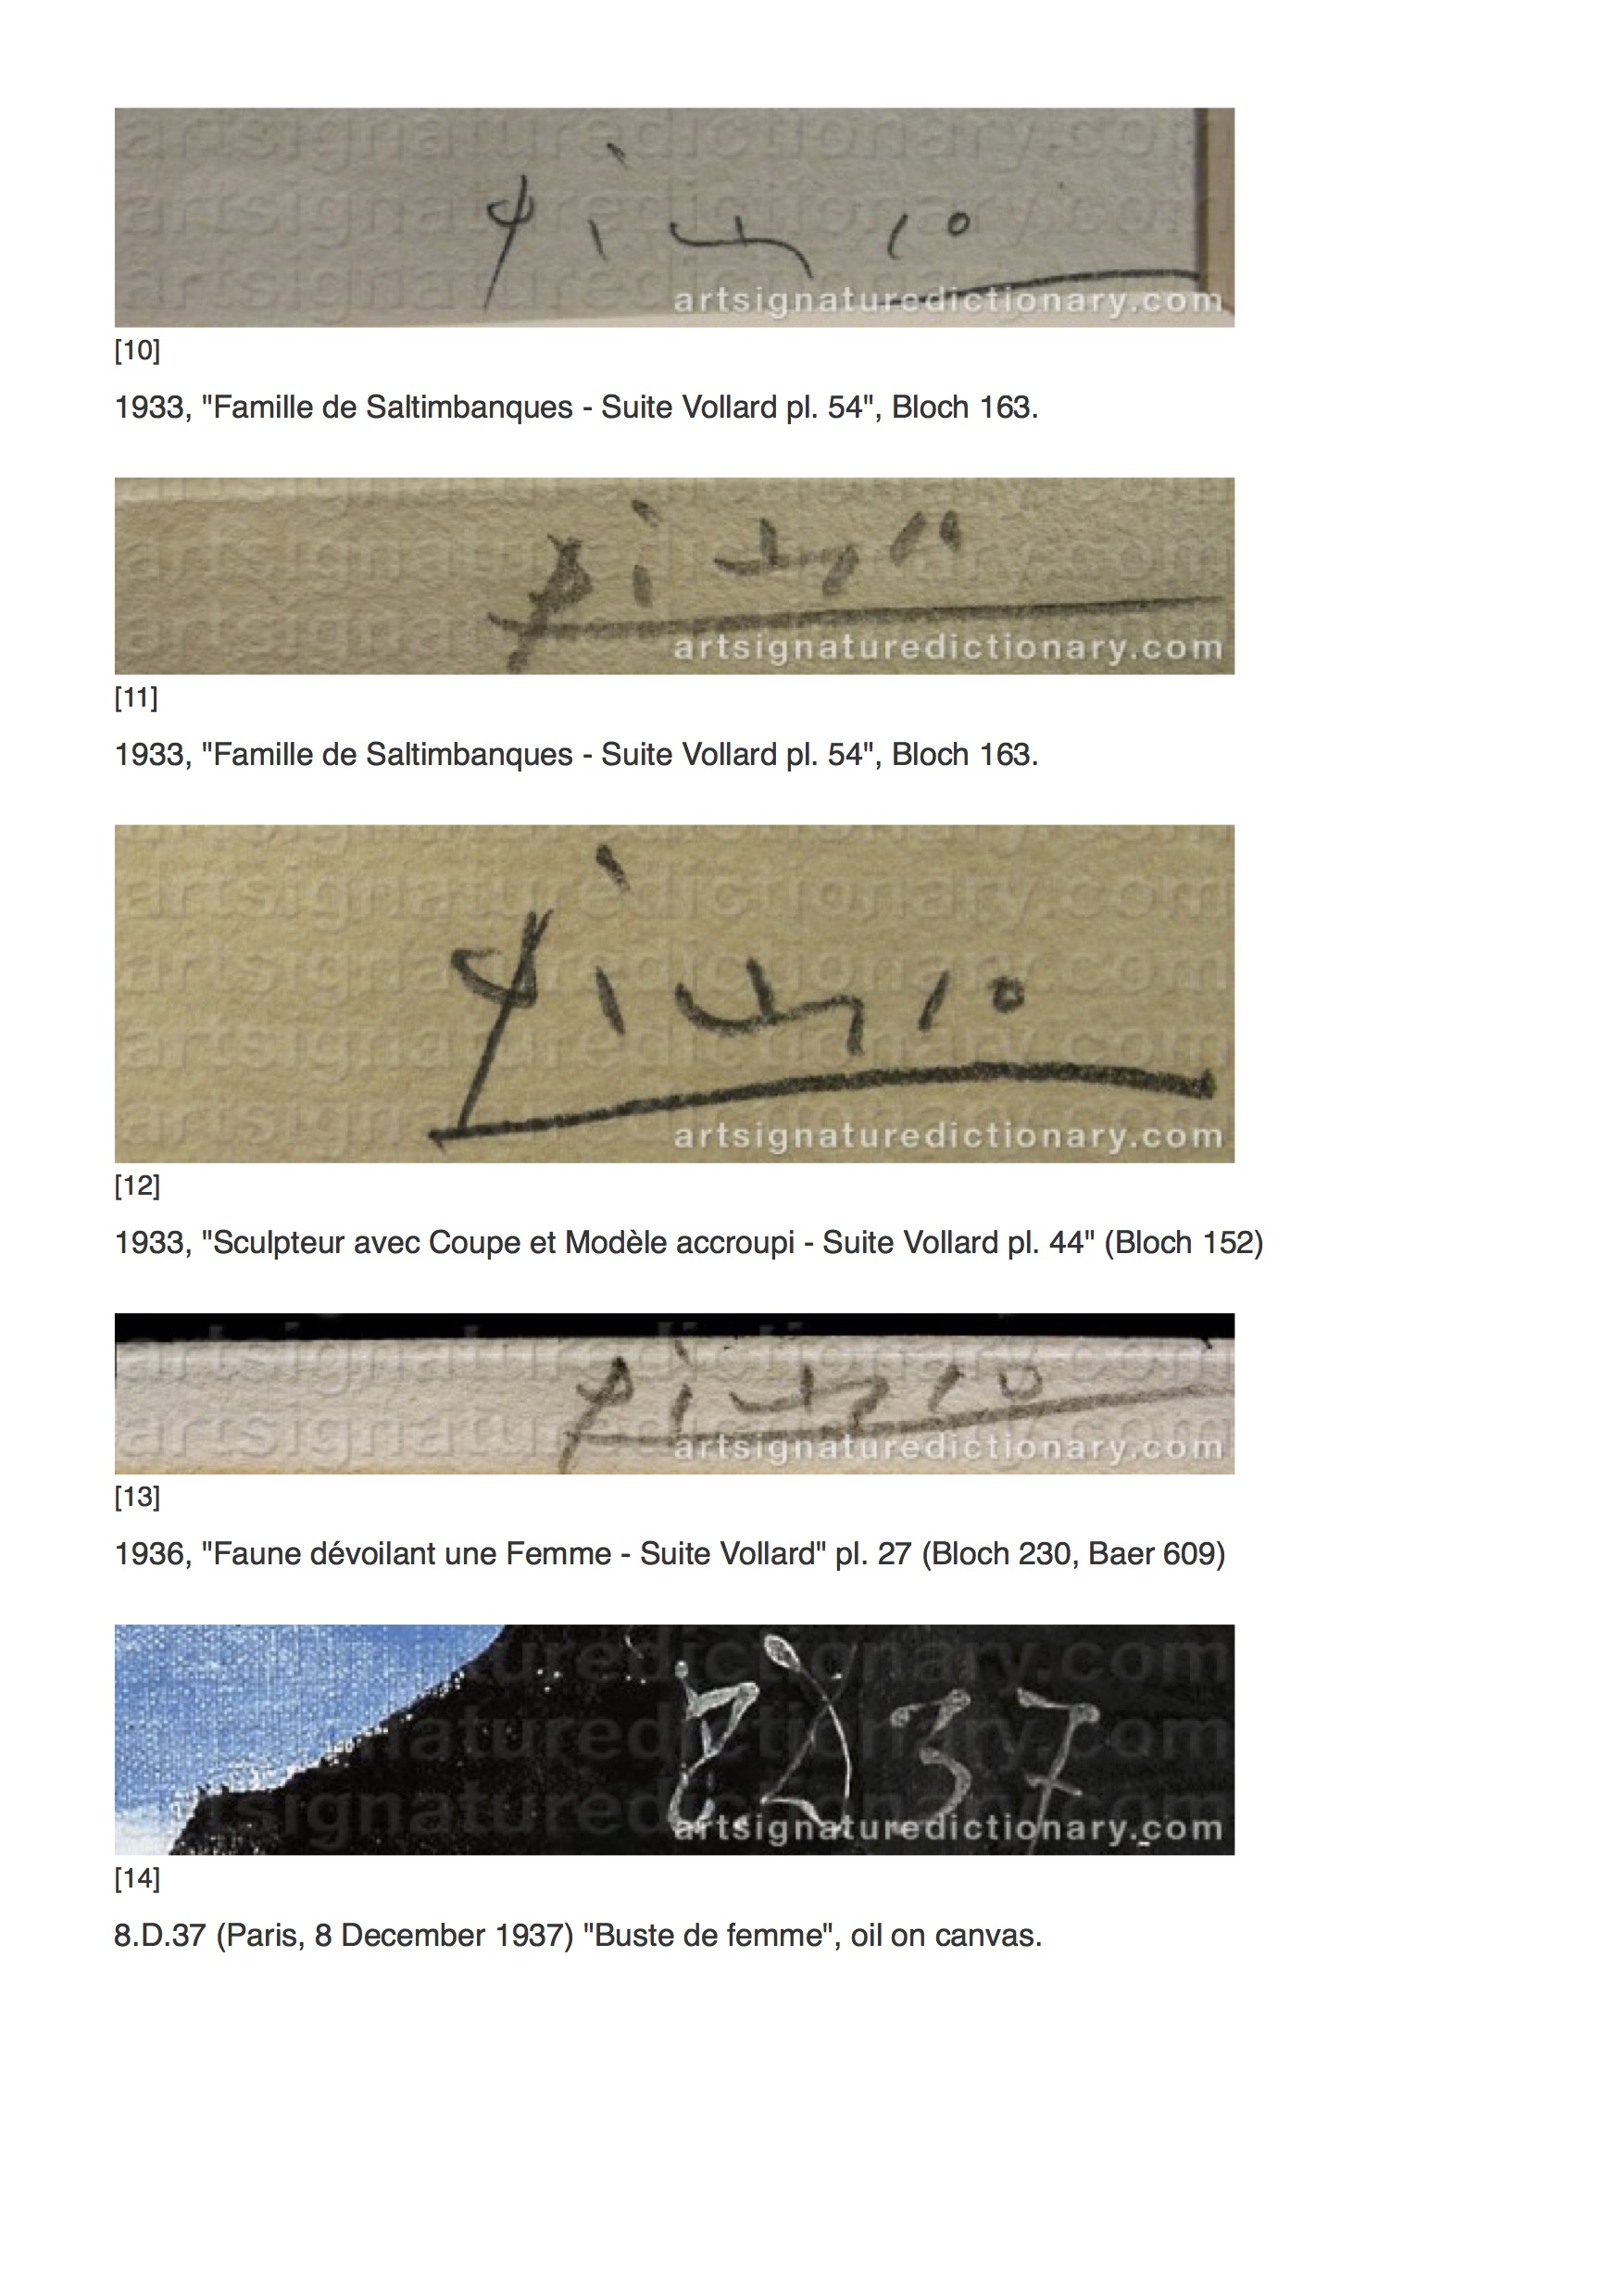 PICASSO, Pablo _ Artist's signatures and monograms, biographies and prices by Art Signature Dictionary3.jpg